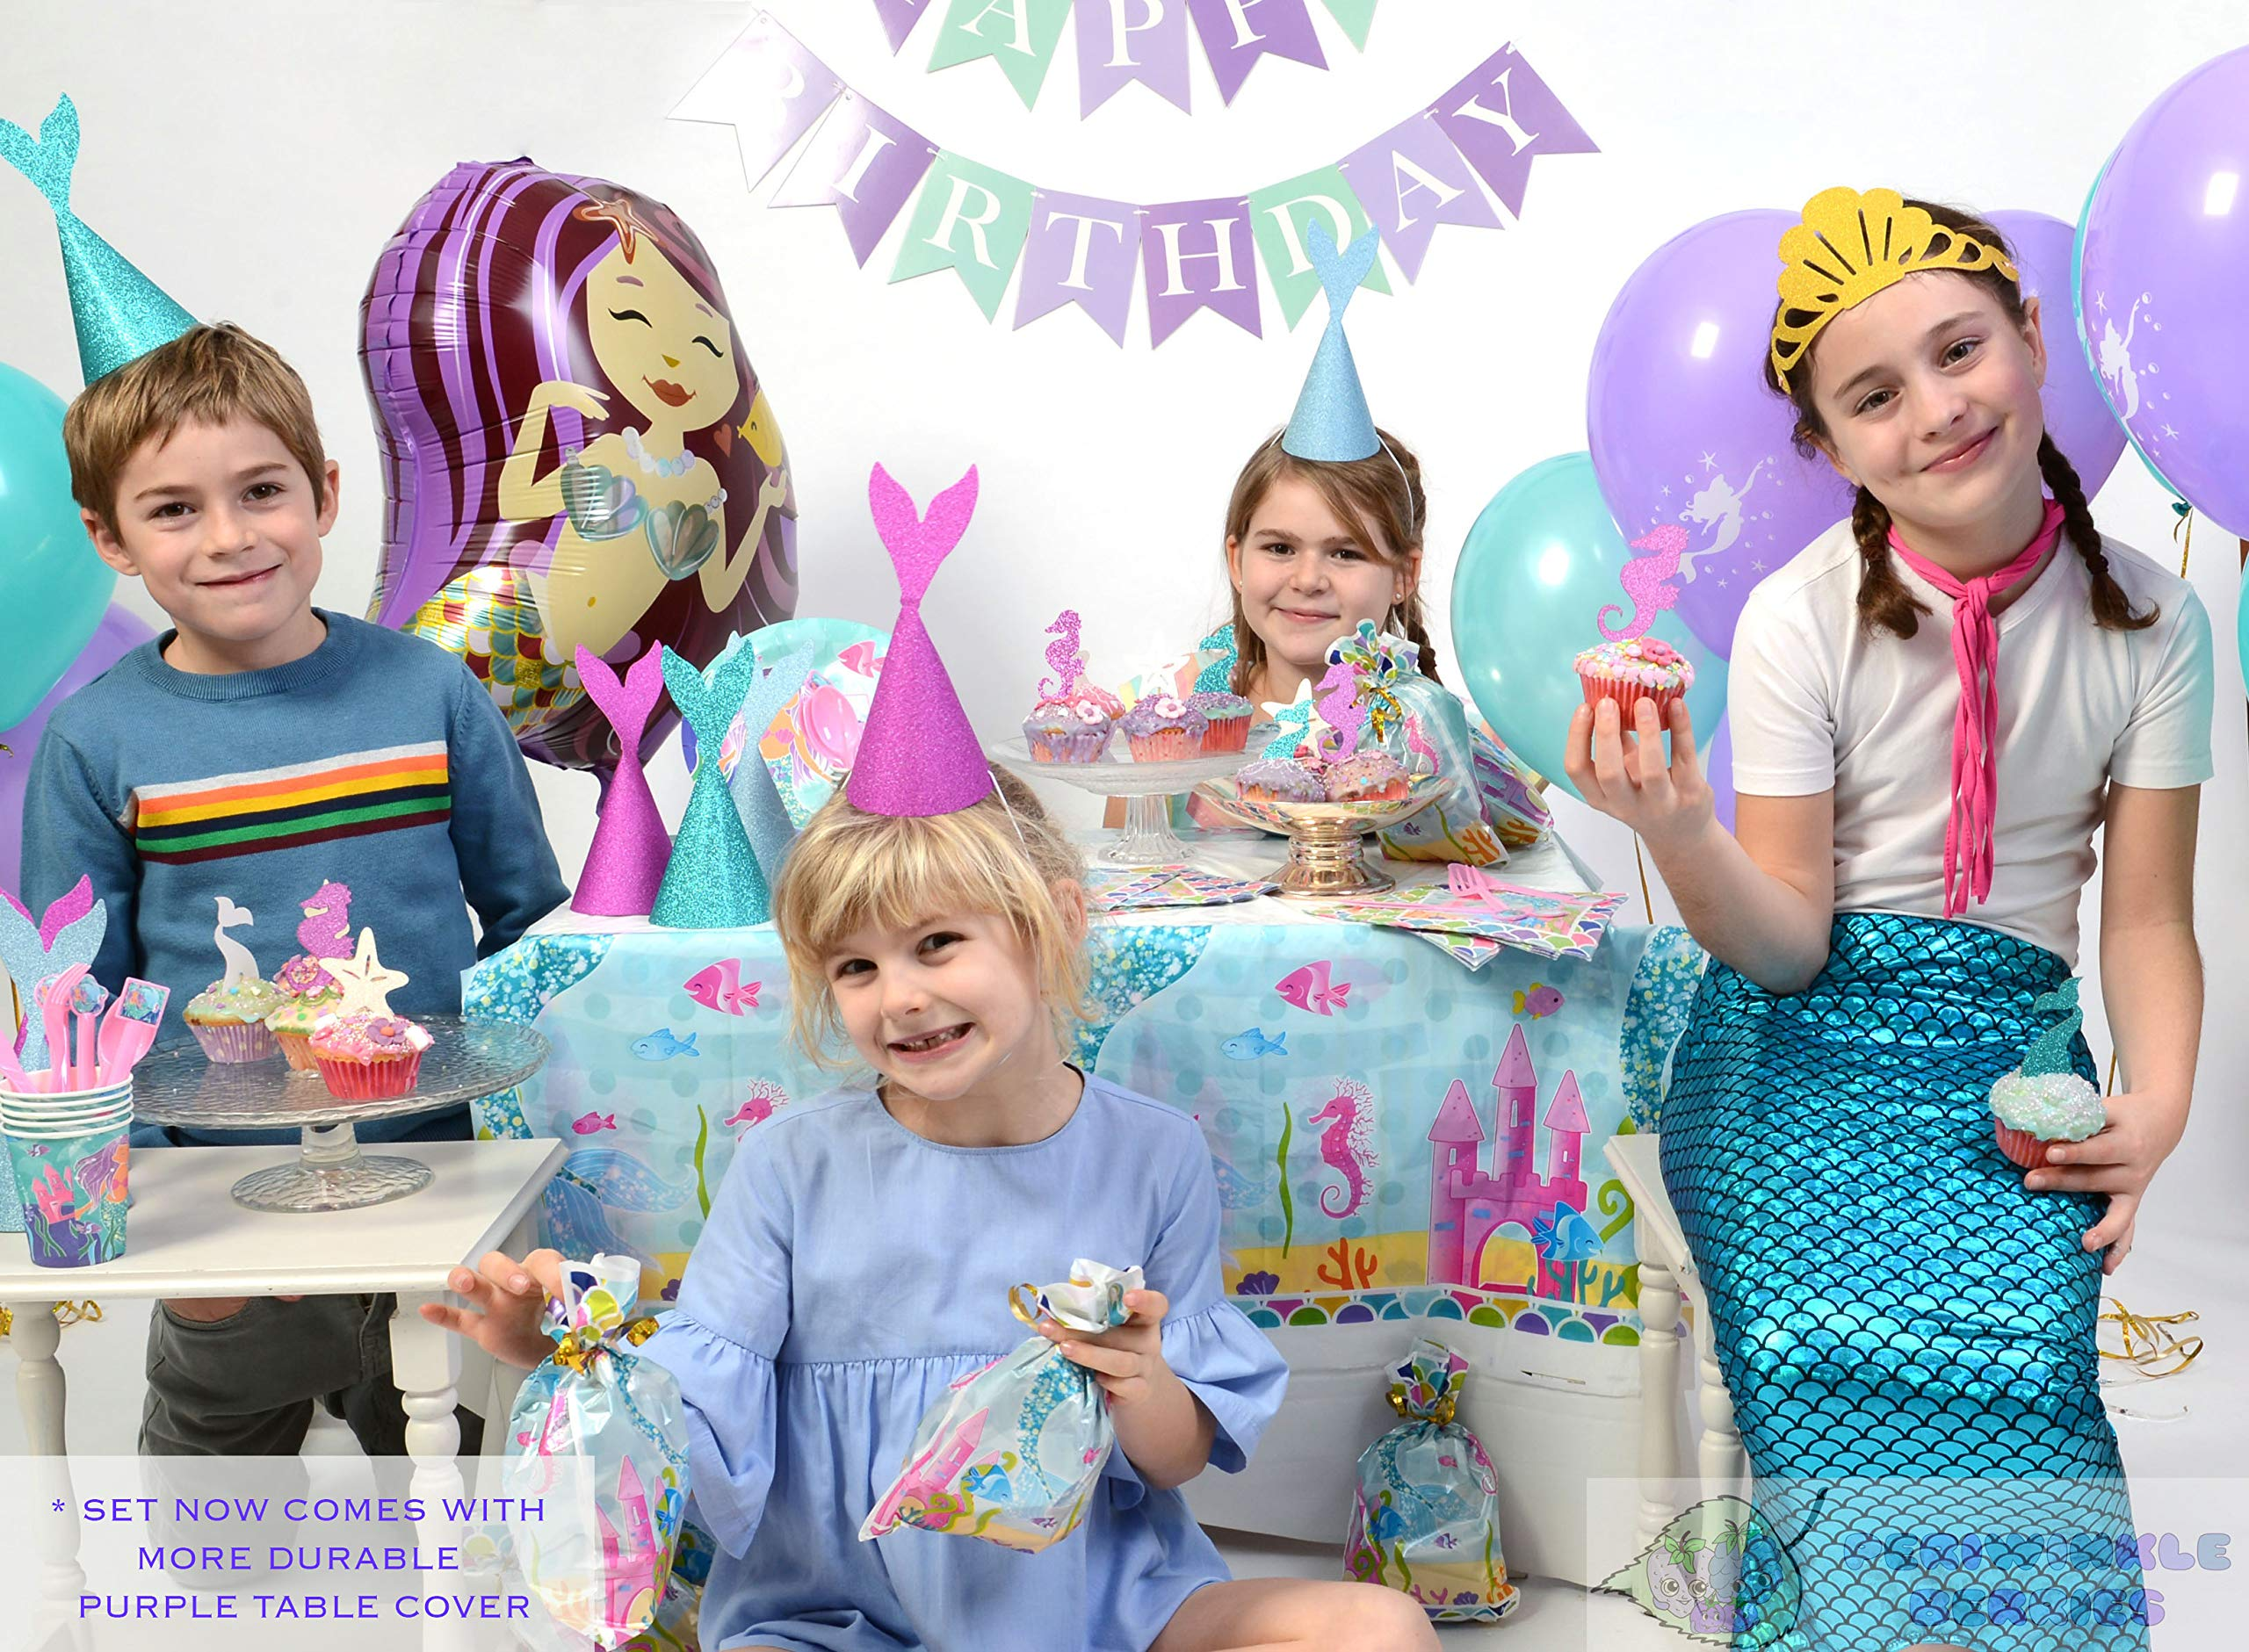 Mermaid Party Supplies - Complete Tableware and Decoration Deluxe Set - Plates, Cups, Utensils, Napkins, Table Cloth, Balloons, Happy Birthday Banner, Cupcake Topper, Favor Bags, Mermaid Hats & Crown by Periwinkle Berries (Image #1)